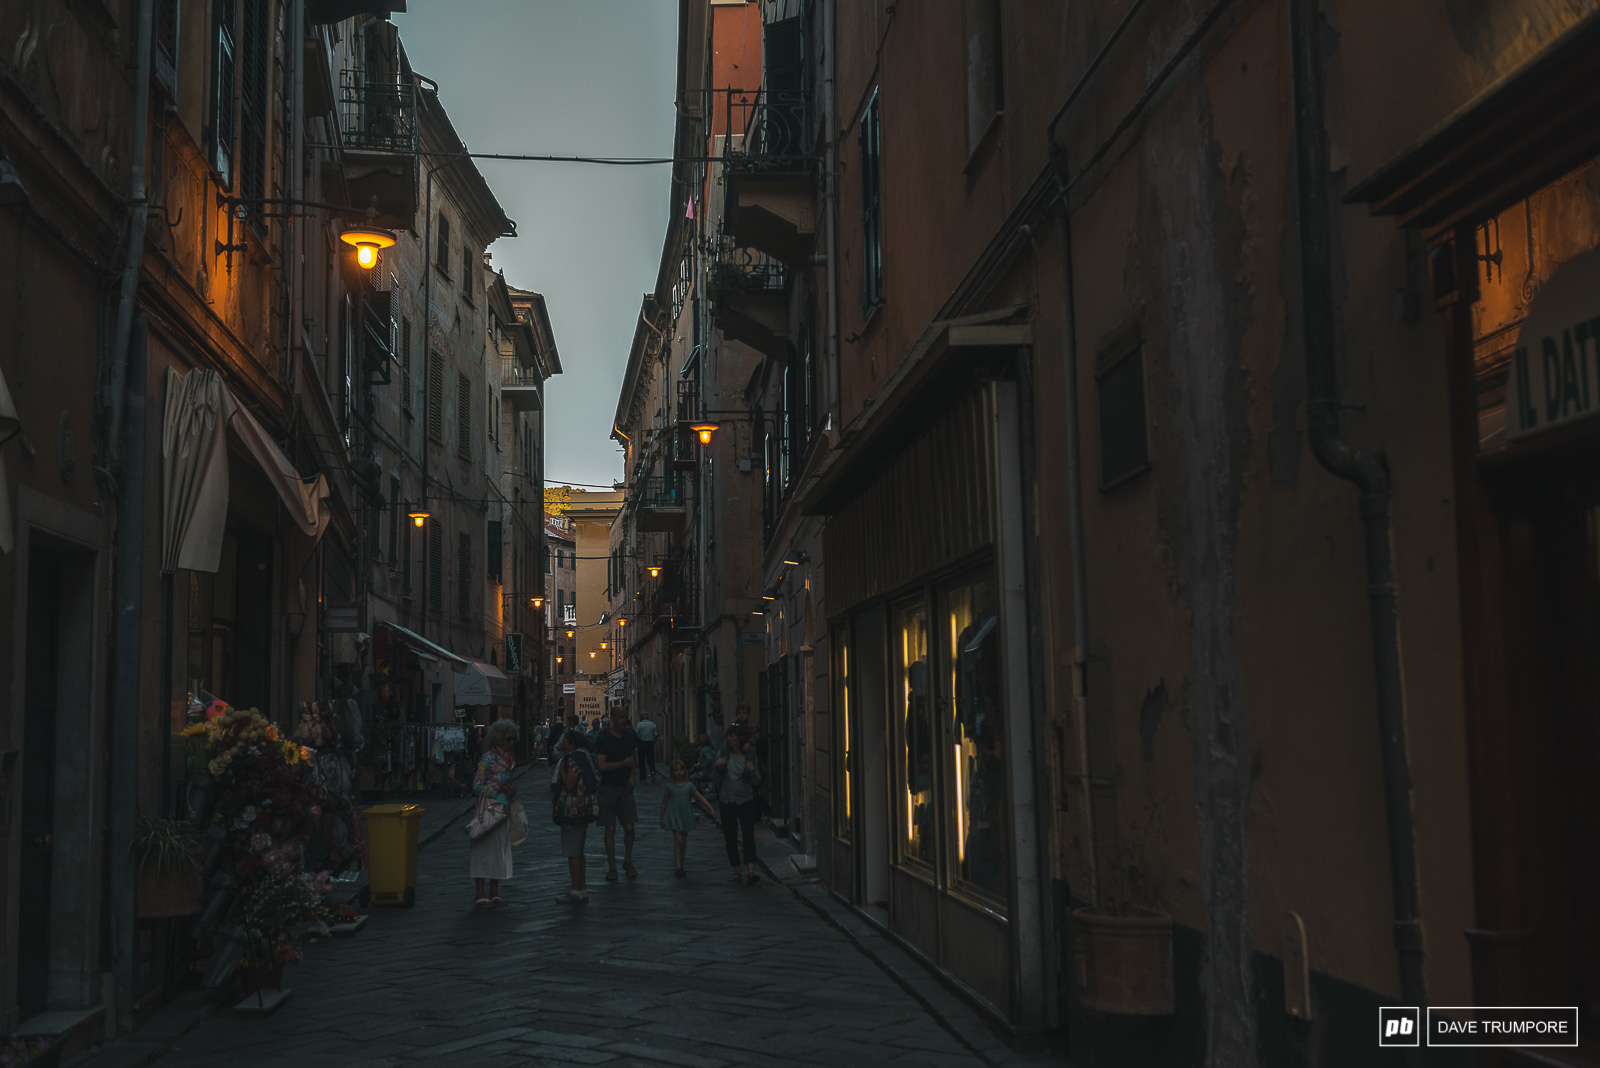 The charming street of Finale